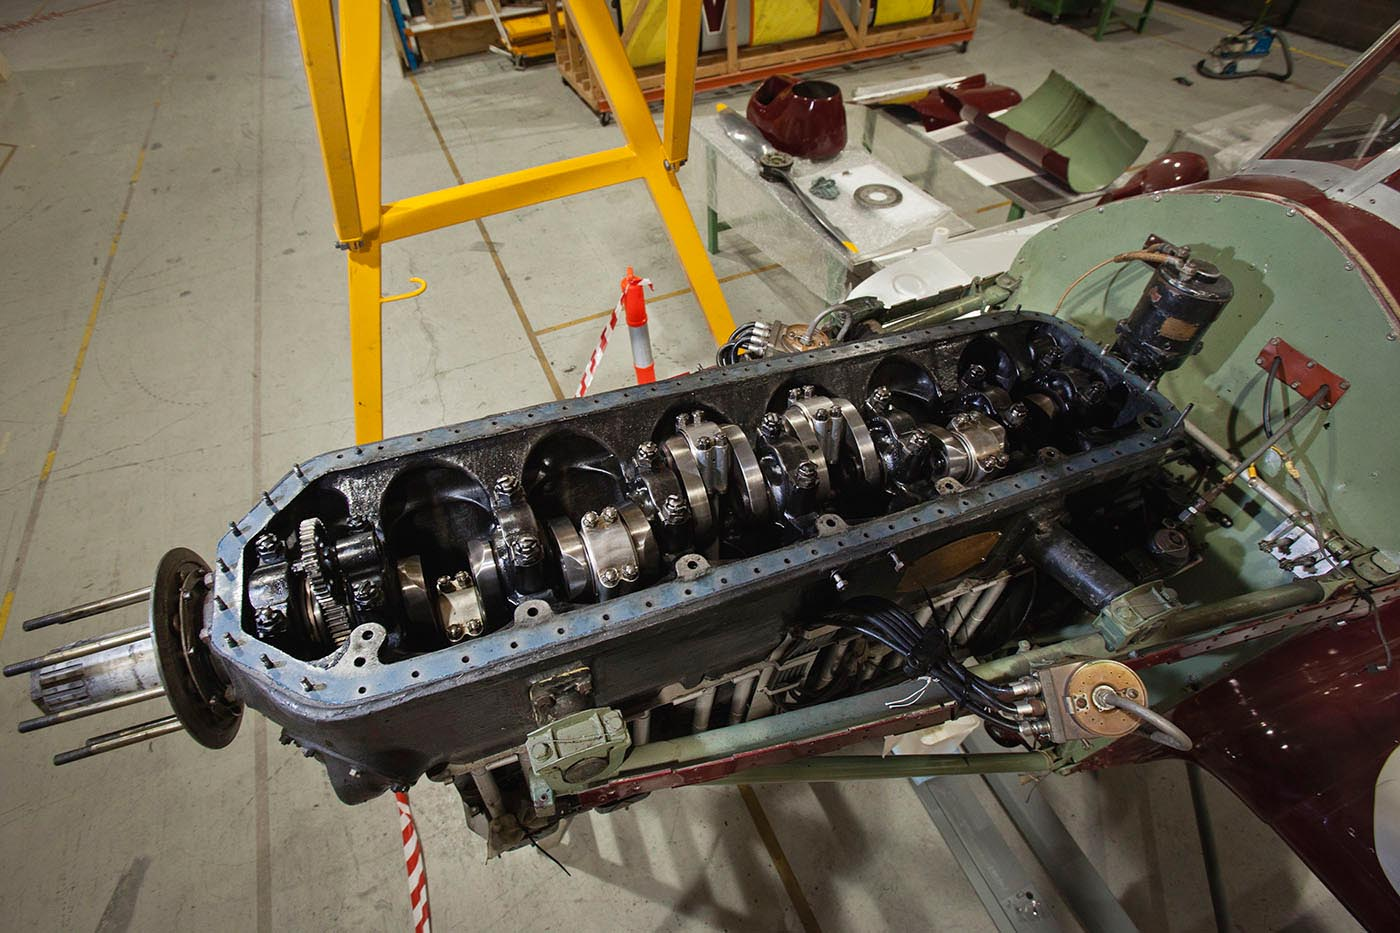 View of the Gull's de Havilland Gipsy Six engine from above, with crankcase cover removed. - click to view larger image